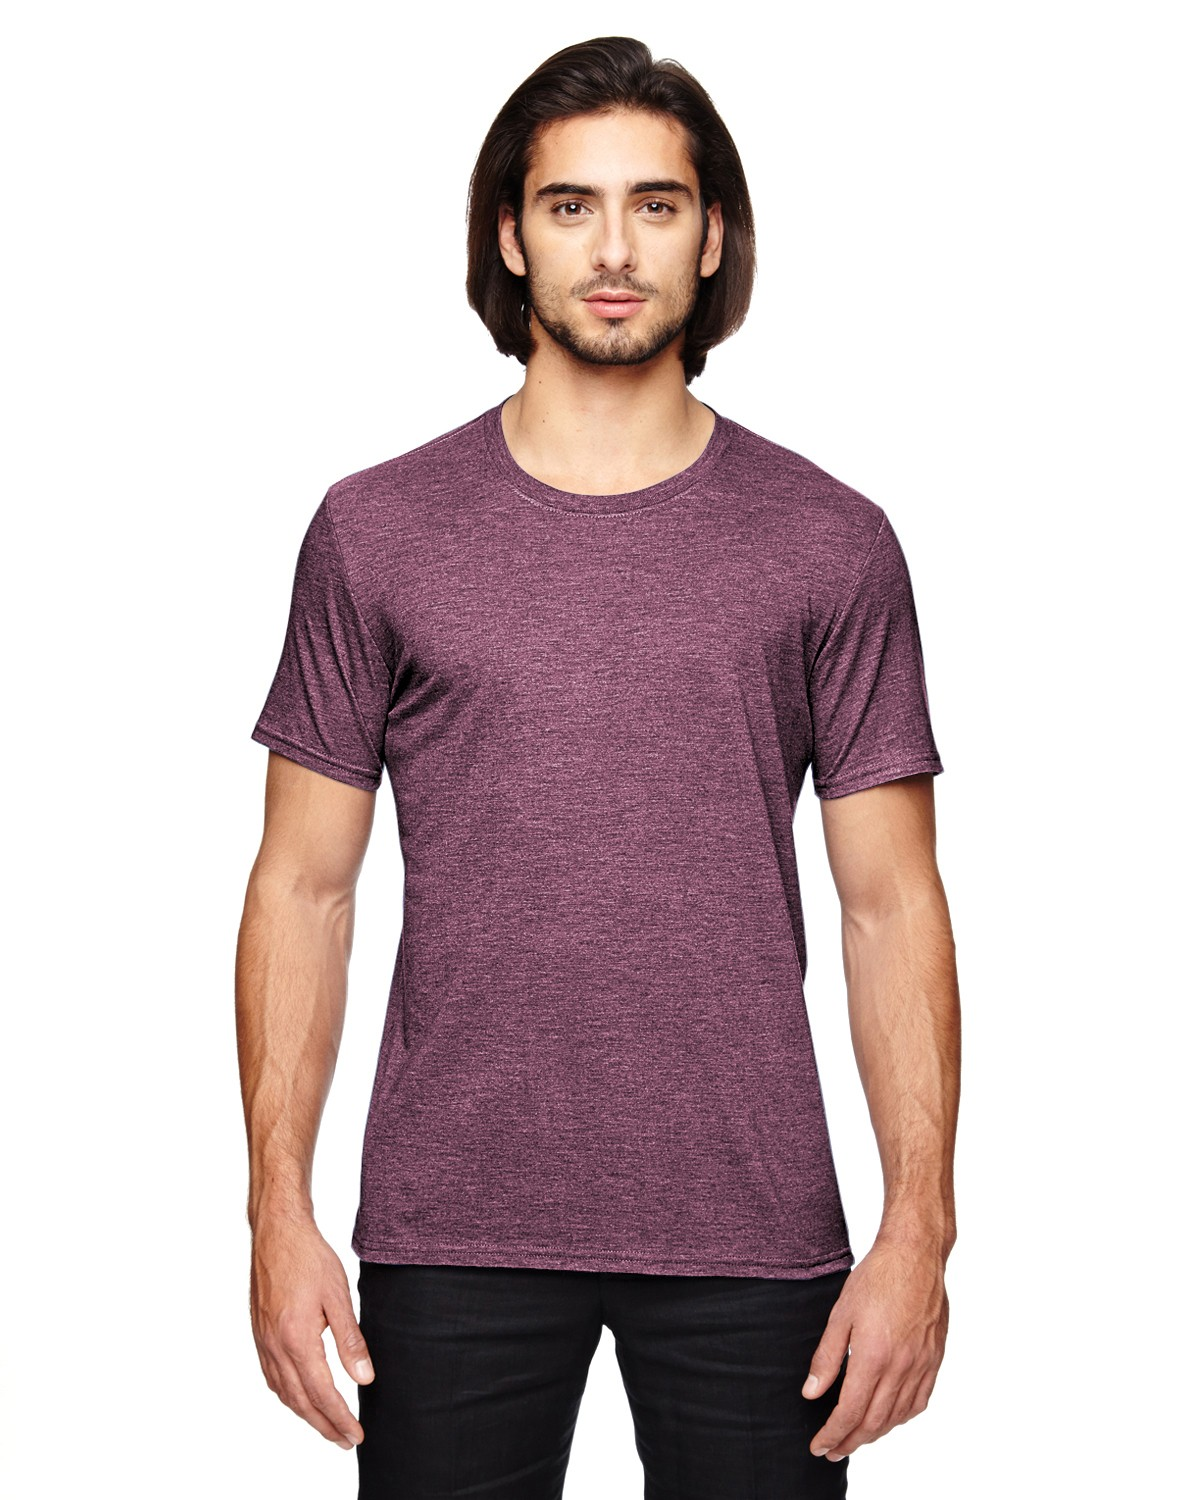 6750 Anvil HEATHER MAROON